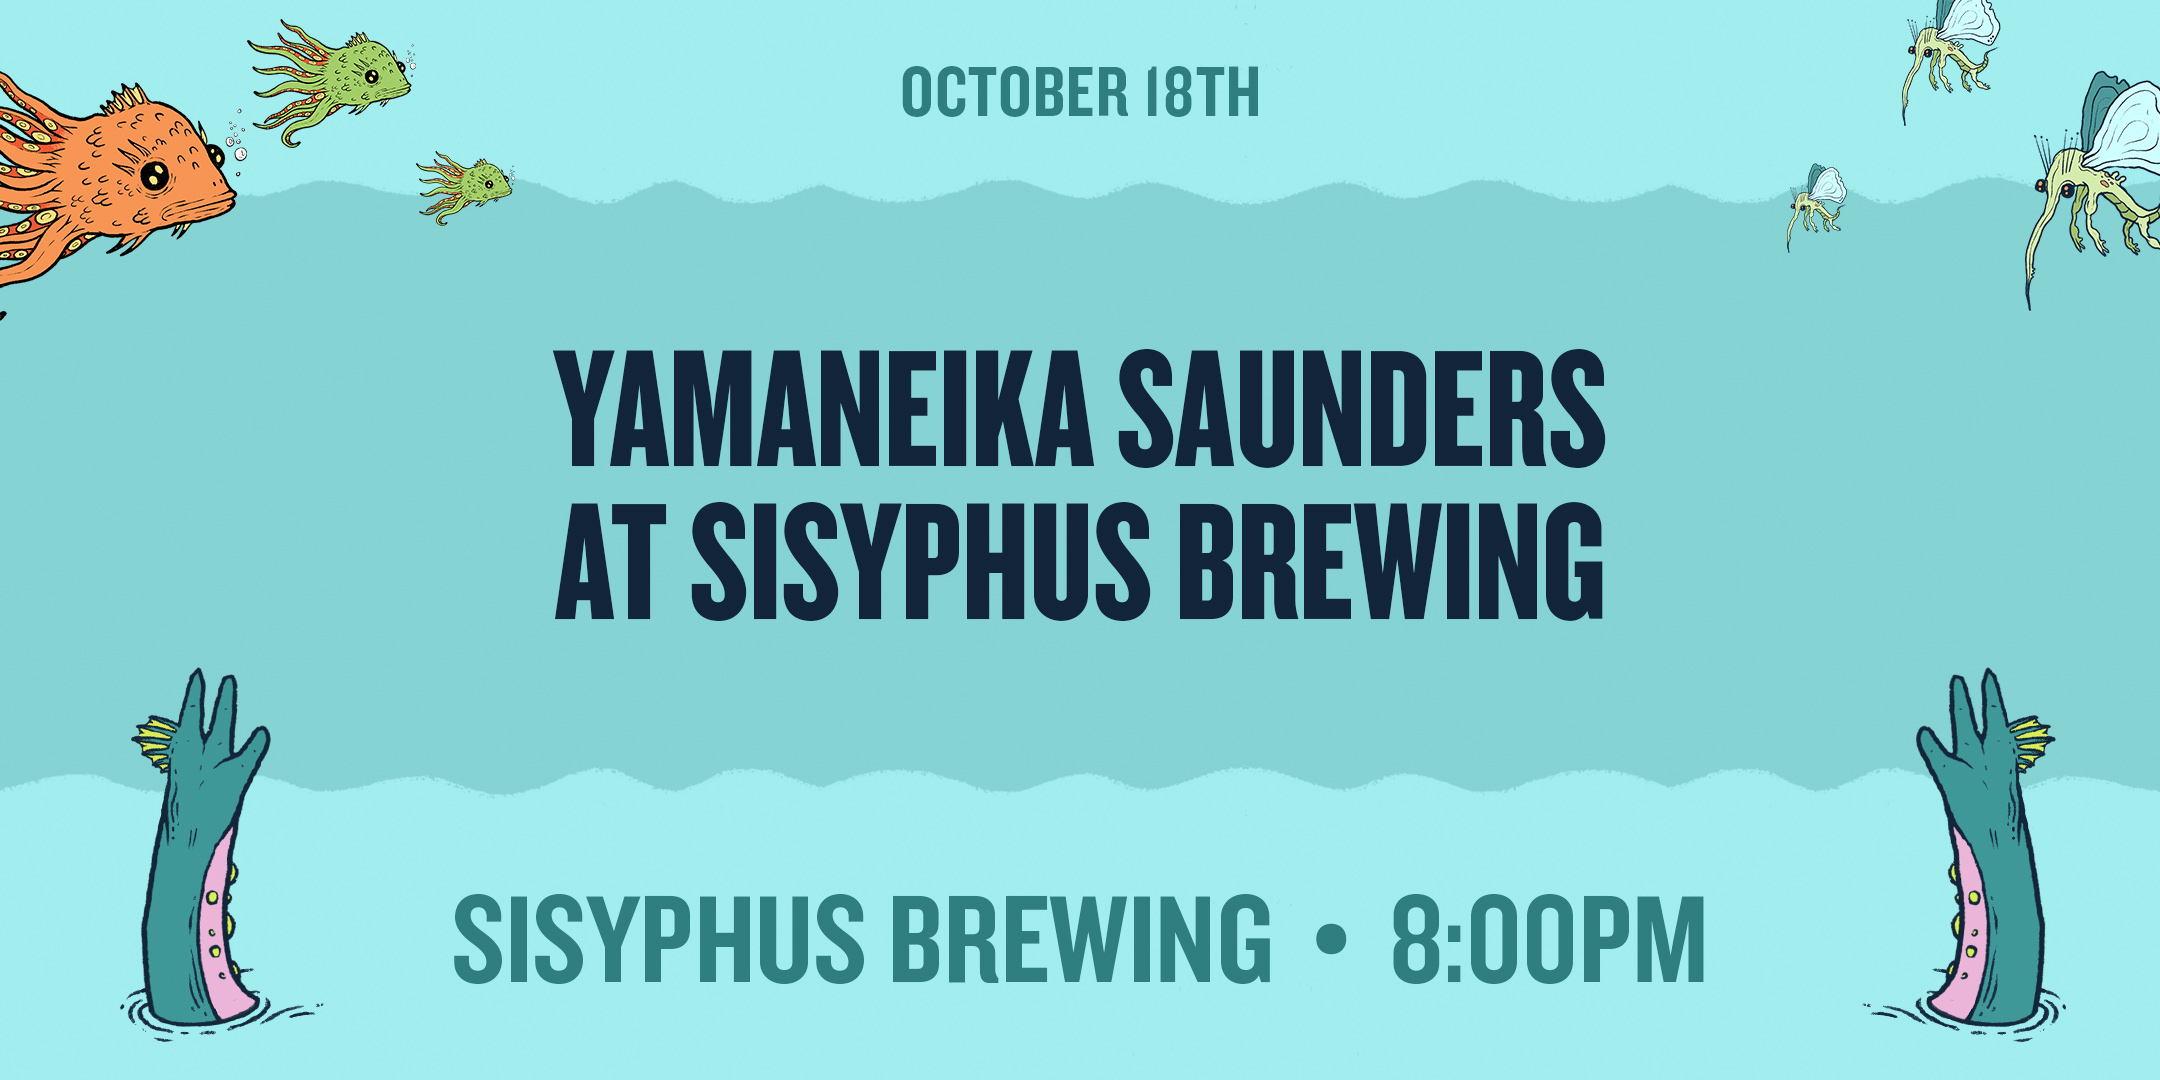 OCT18-Yamaneika Saunders at Sisyphus Brewing.jpg